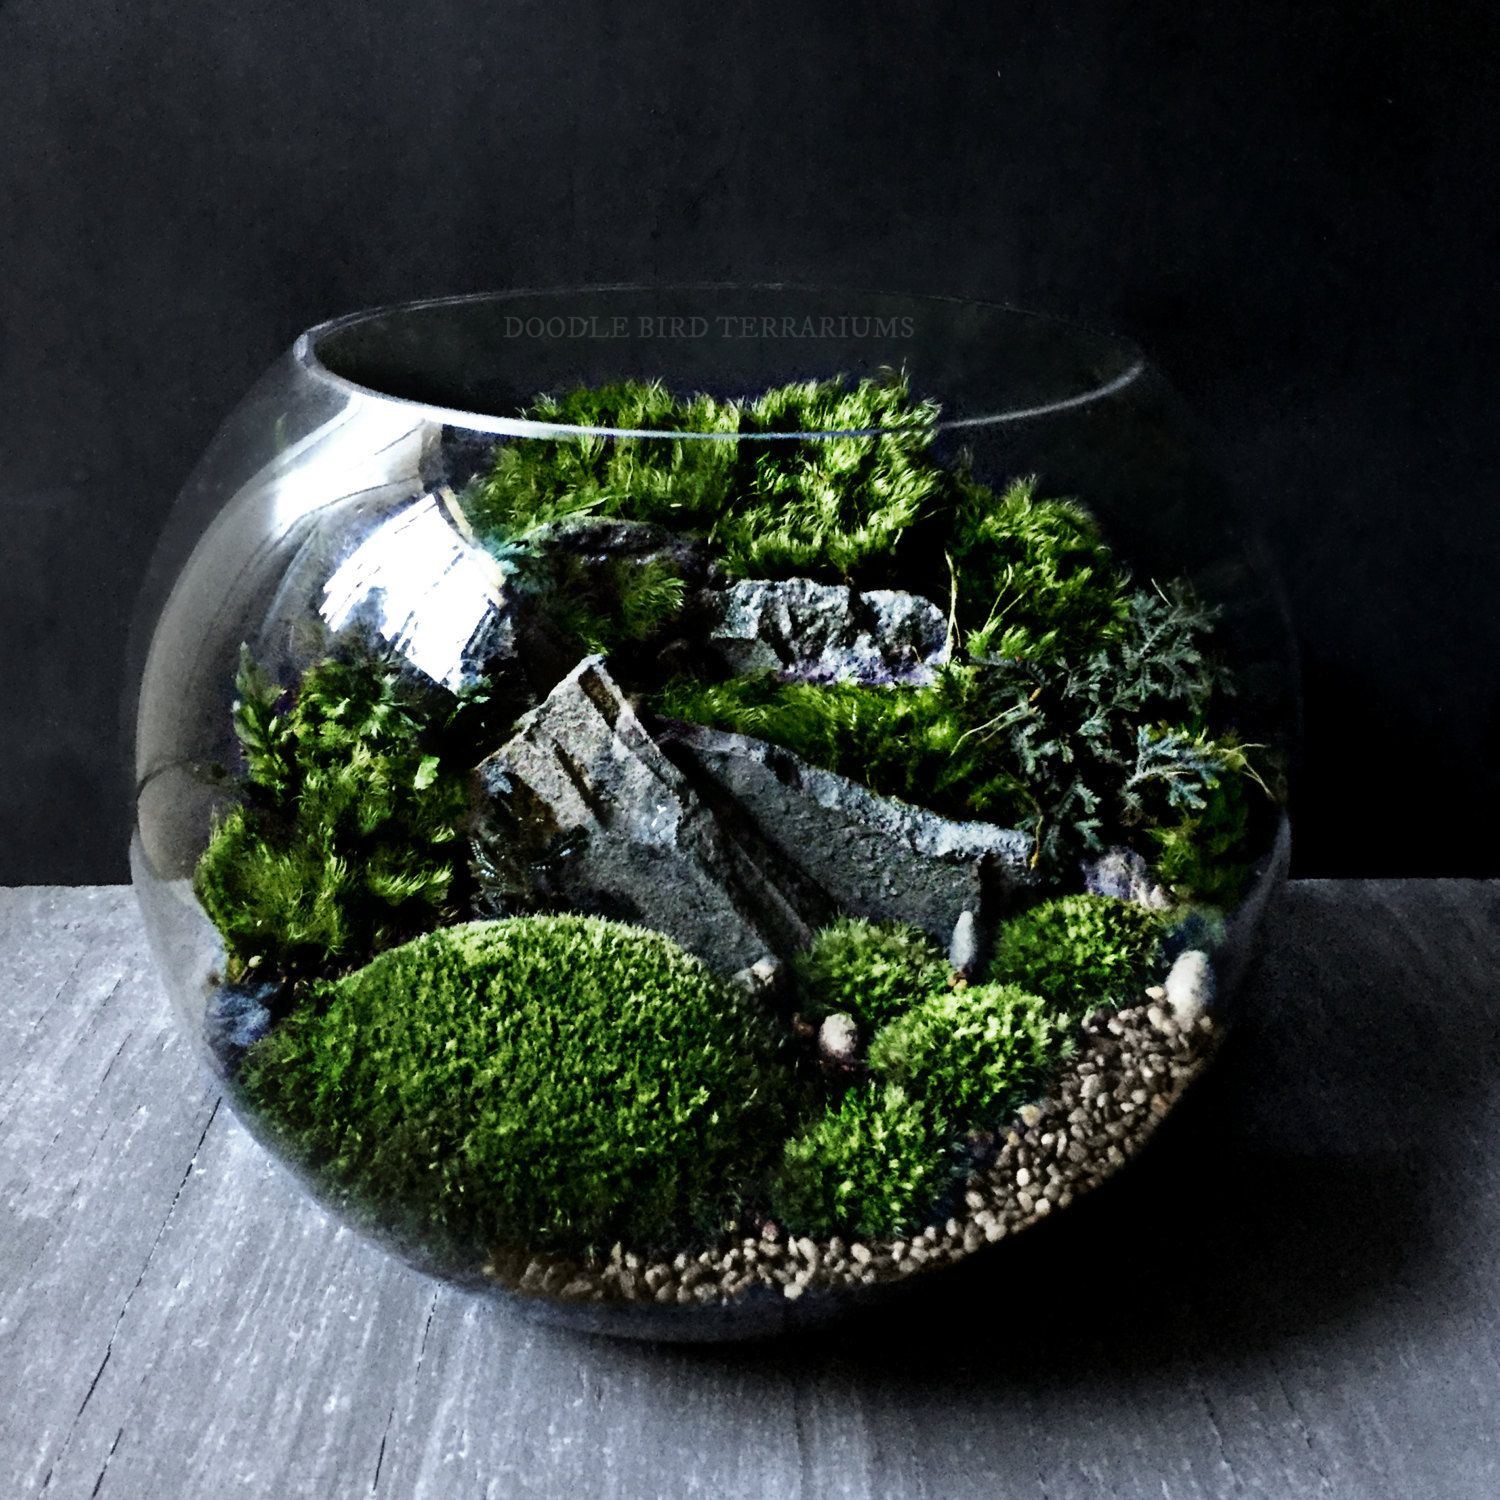 Bio-Bowl Forest World Terrarium with Live Woodland Plants - 4 Sizes - Bio-Bowl Forest World Terrarium With Live Woodland Plants - 4